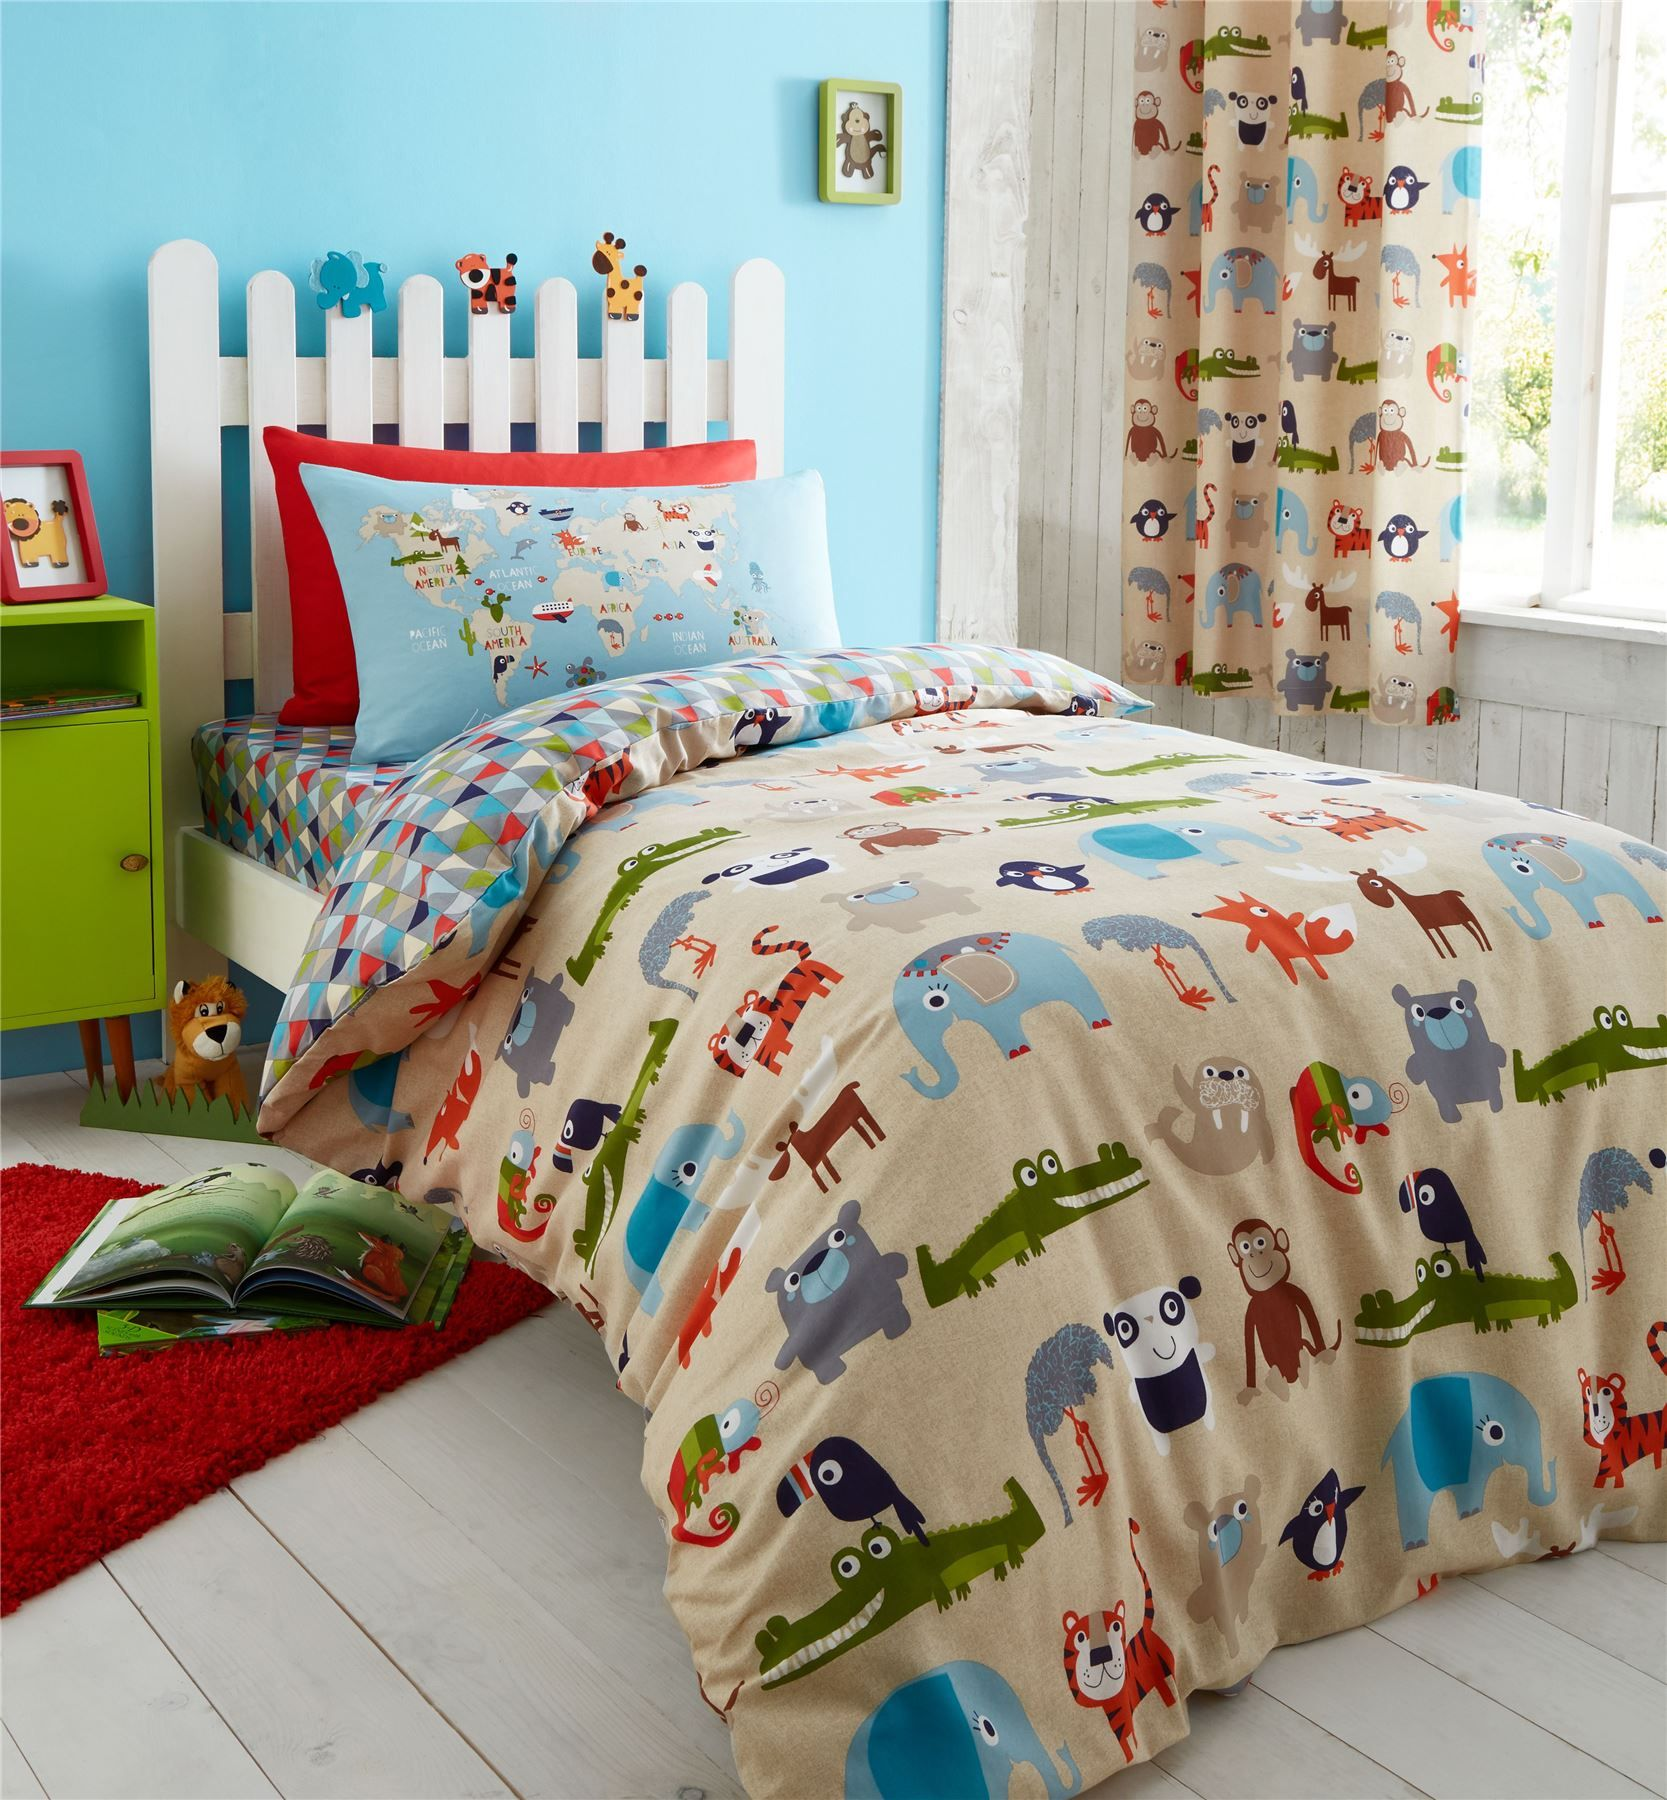 Comforter Cover Full Zoo Safari Animals Kids Bedding Twin Or Full Duvet Cover